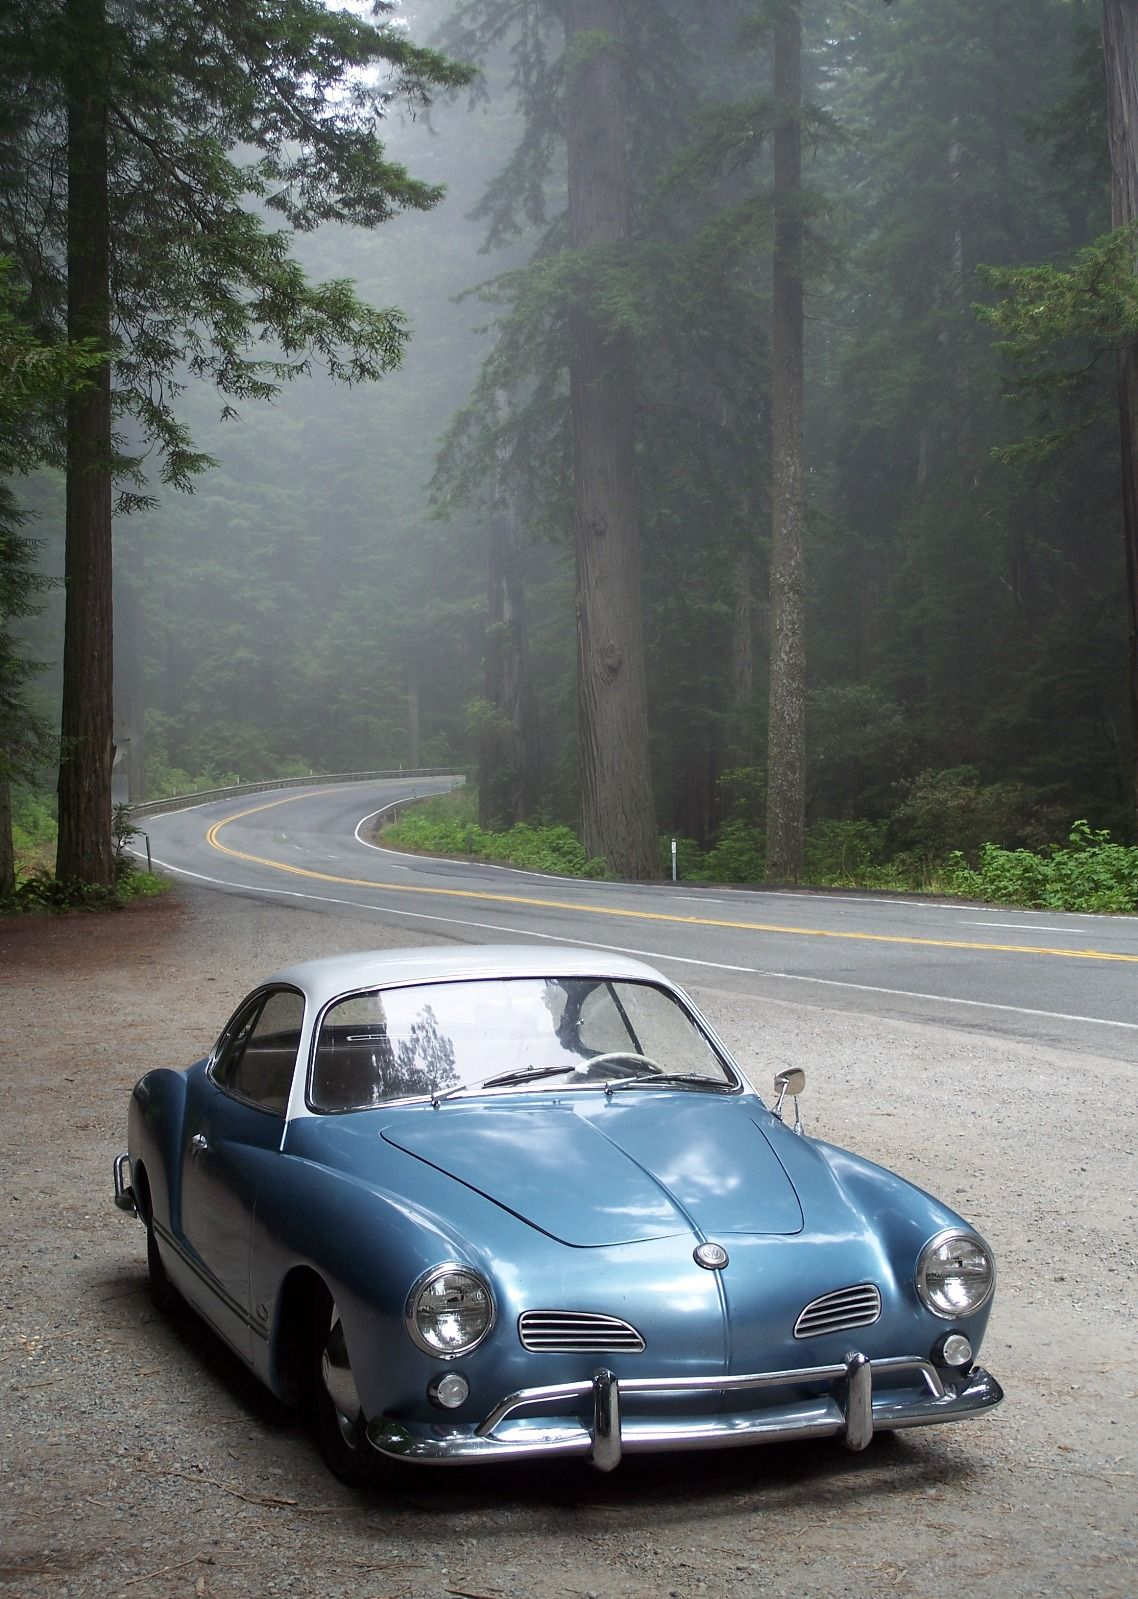 Classic Cars You Can Daily Drive Fresh the Rotten Wonderland Bild